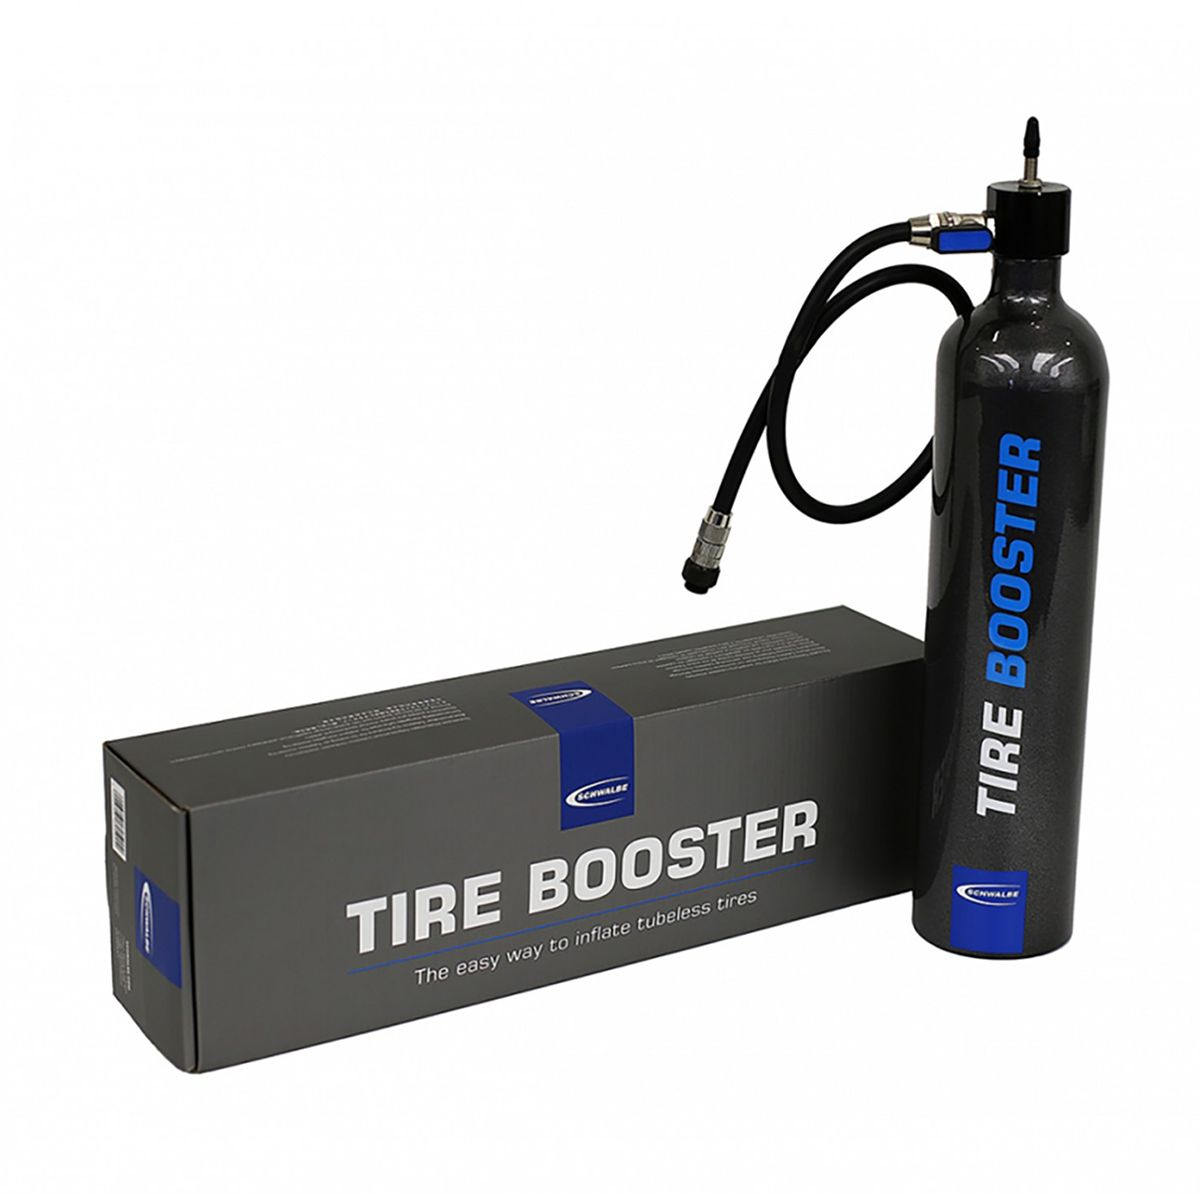 Tire Booster for tubeless assembly